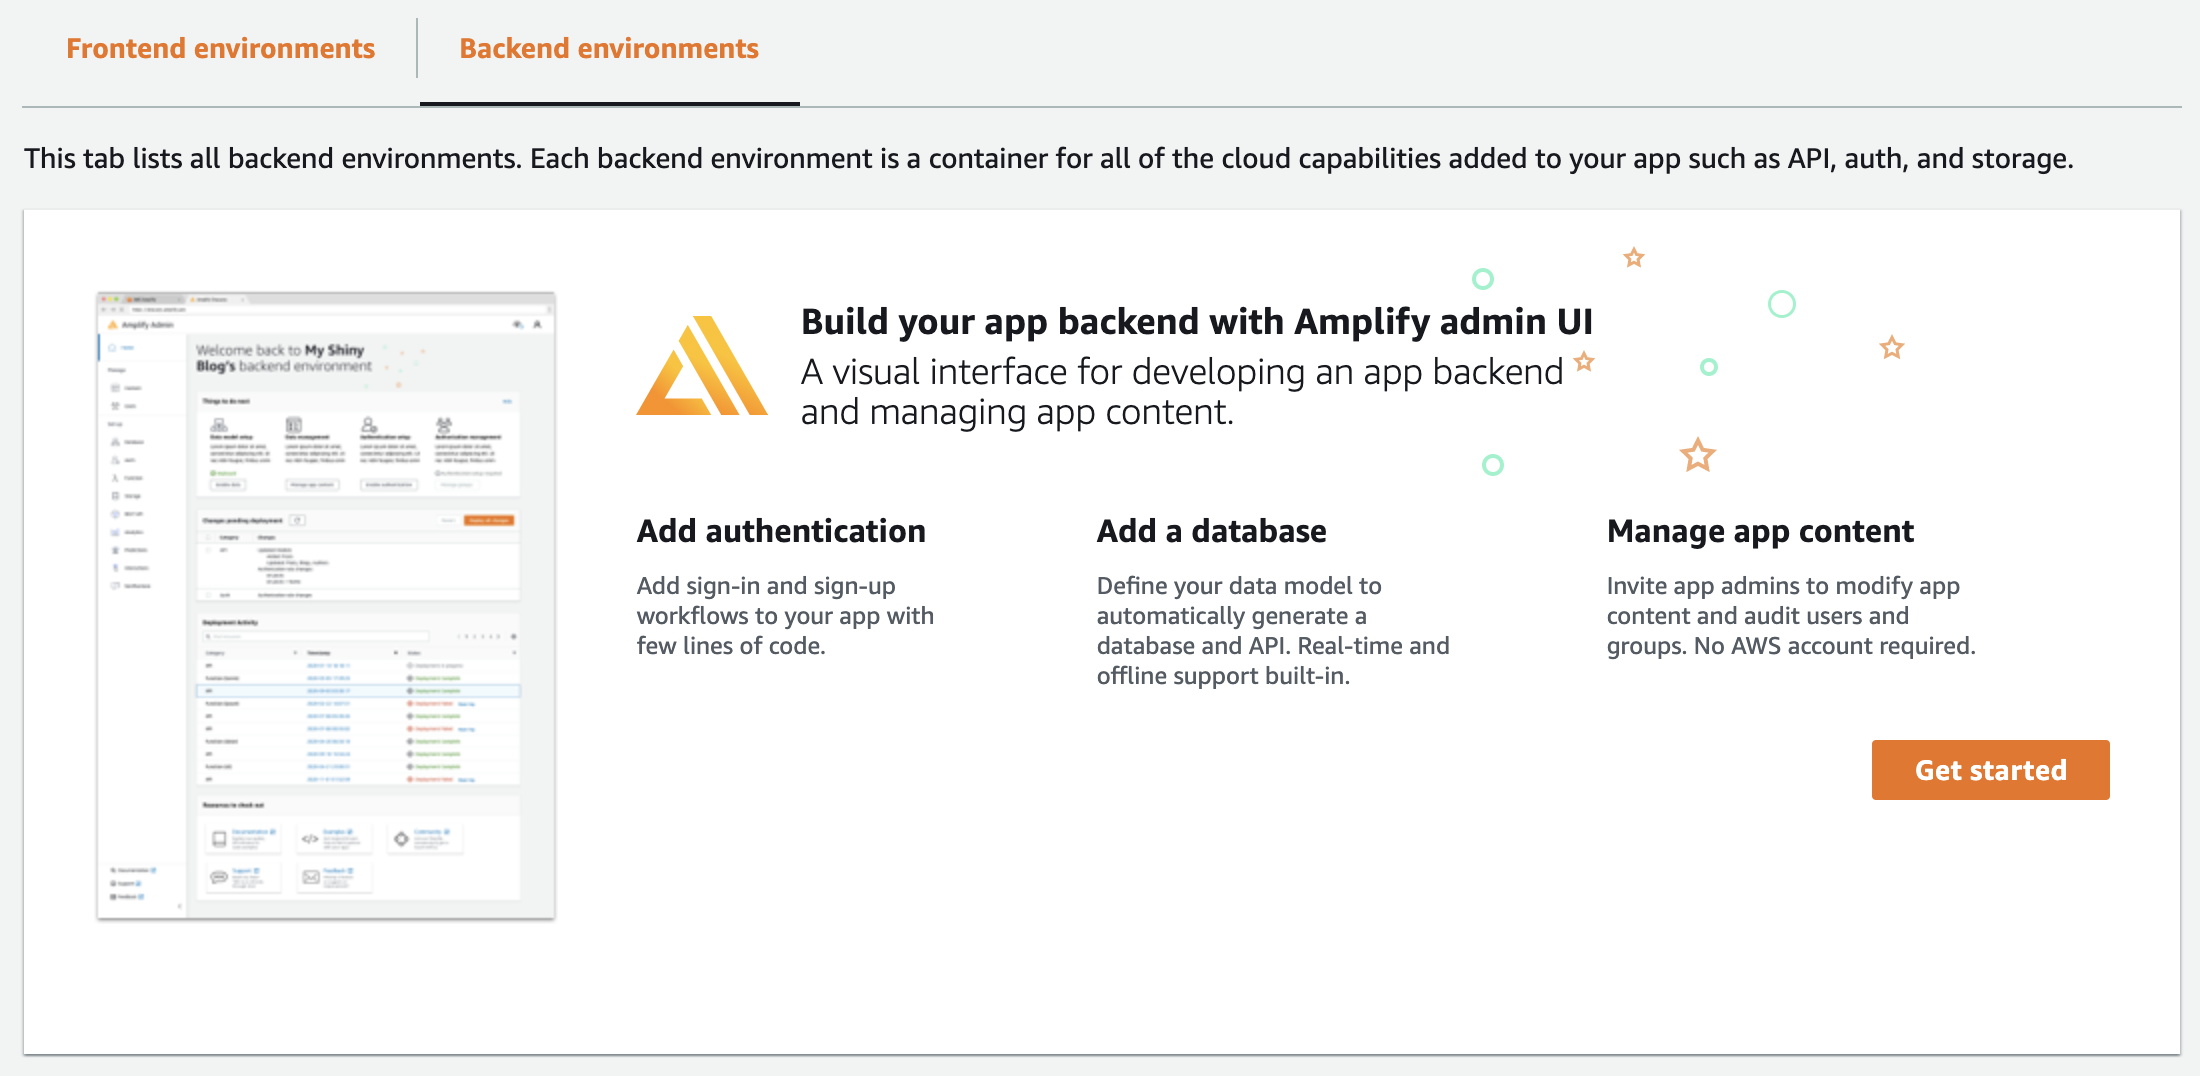 Amplify App Get Started Backend environments